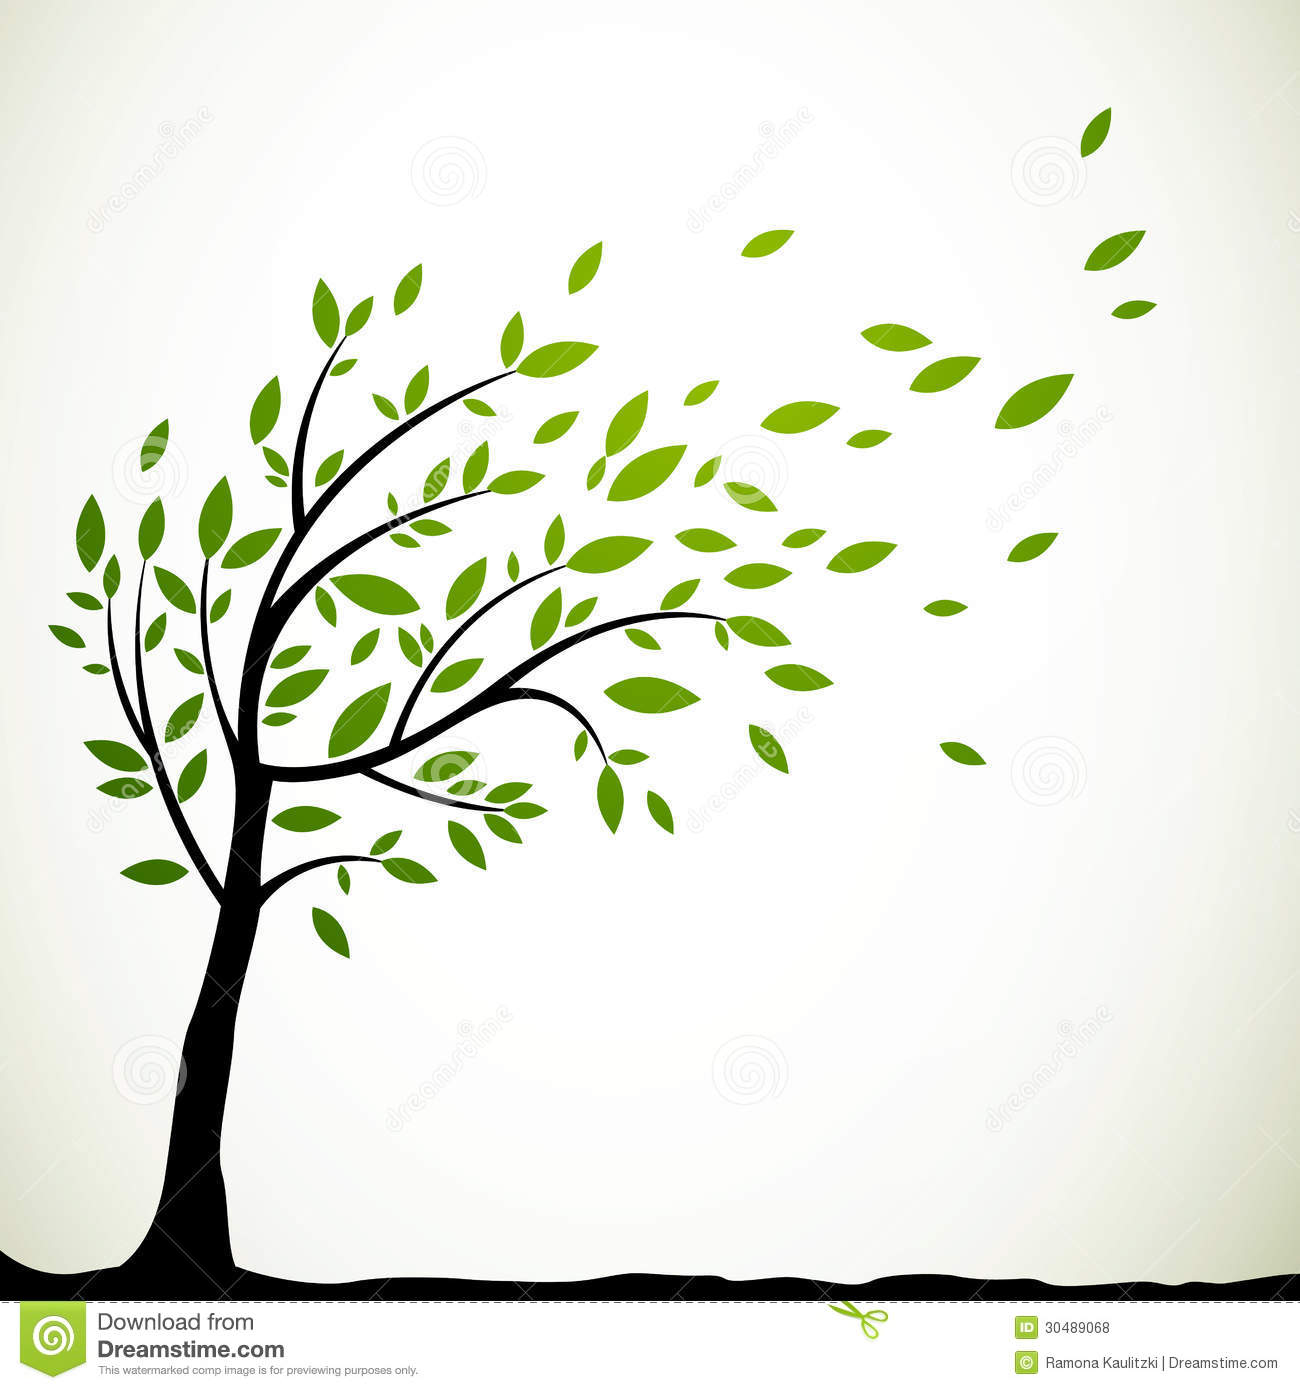 Abstract Tree Royalty Free Stock Photos - Image: 30489068